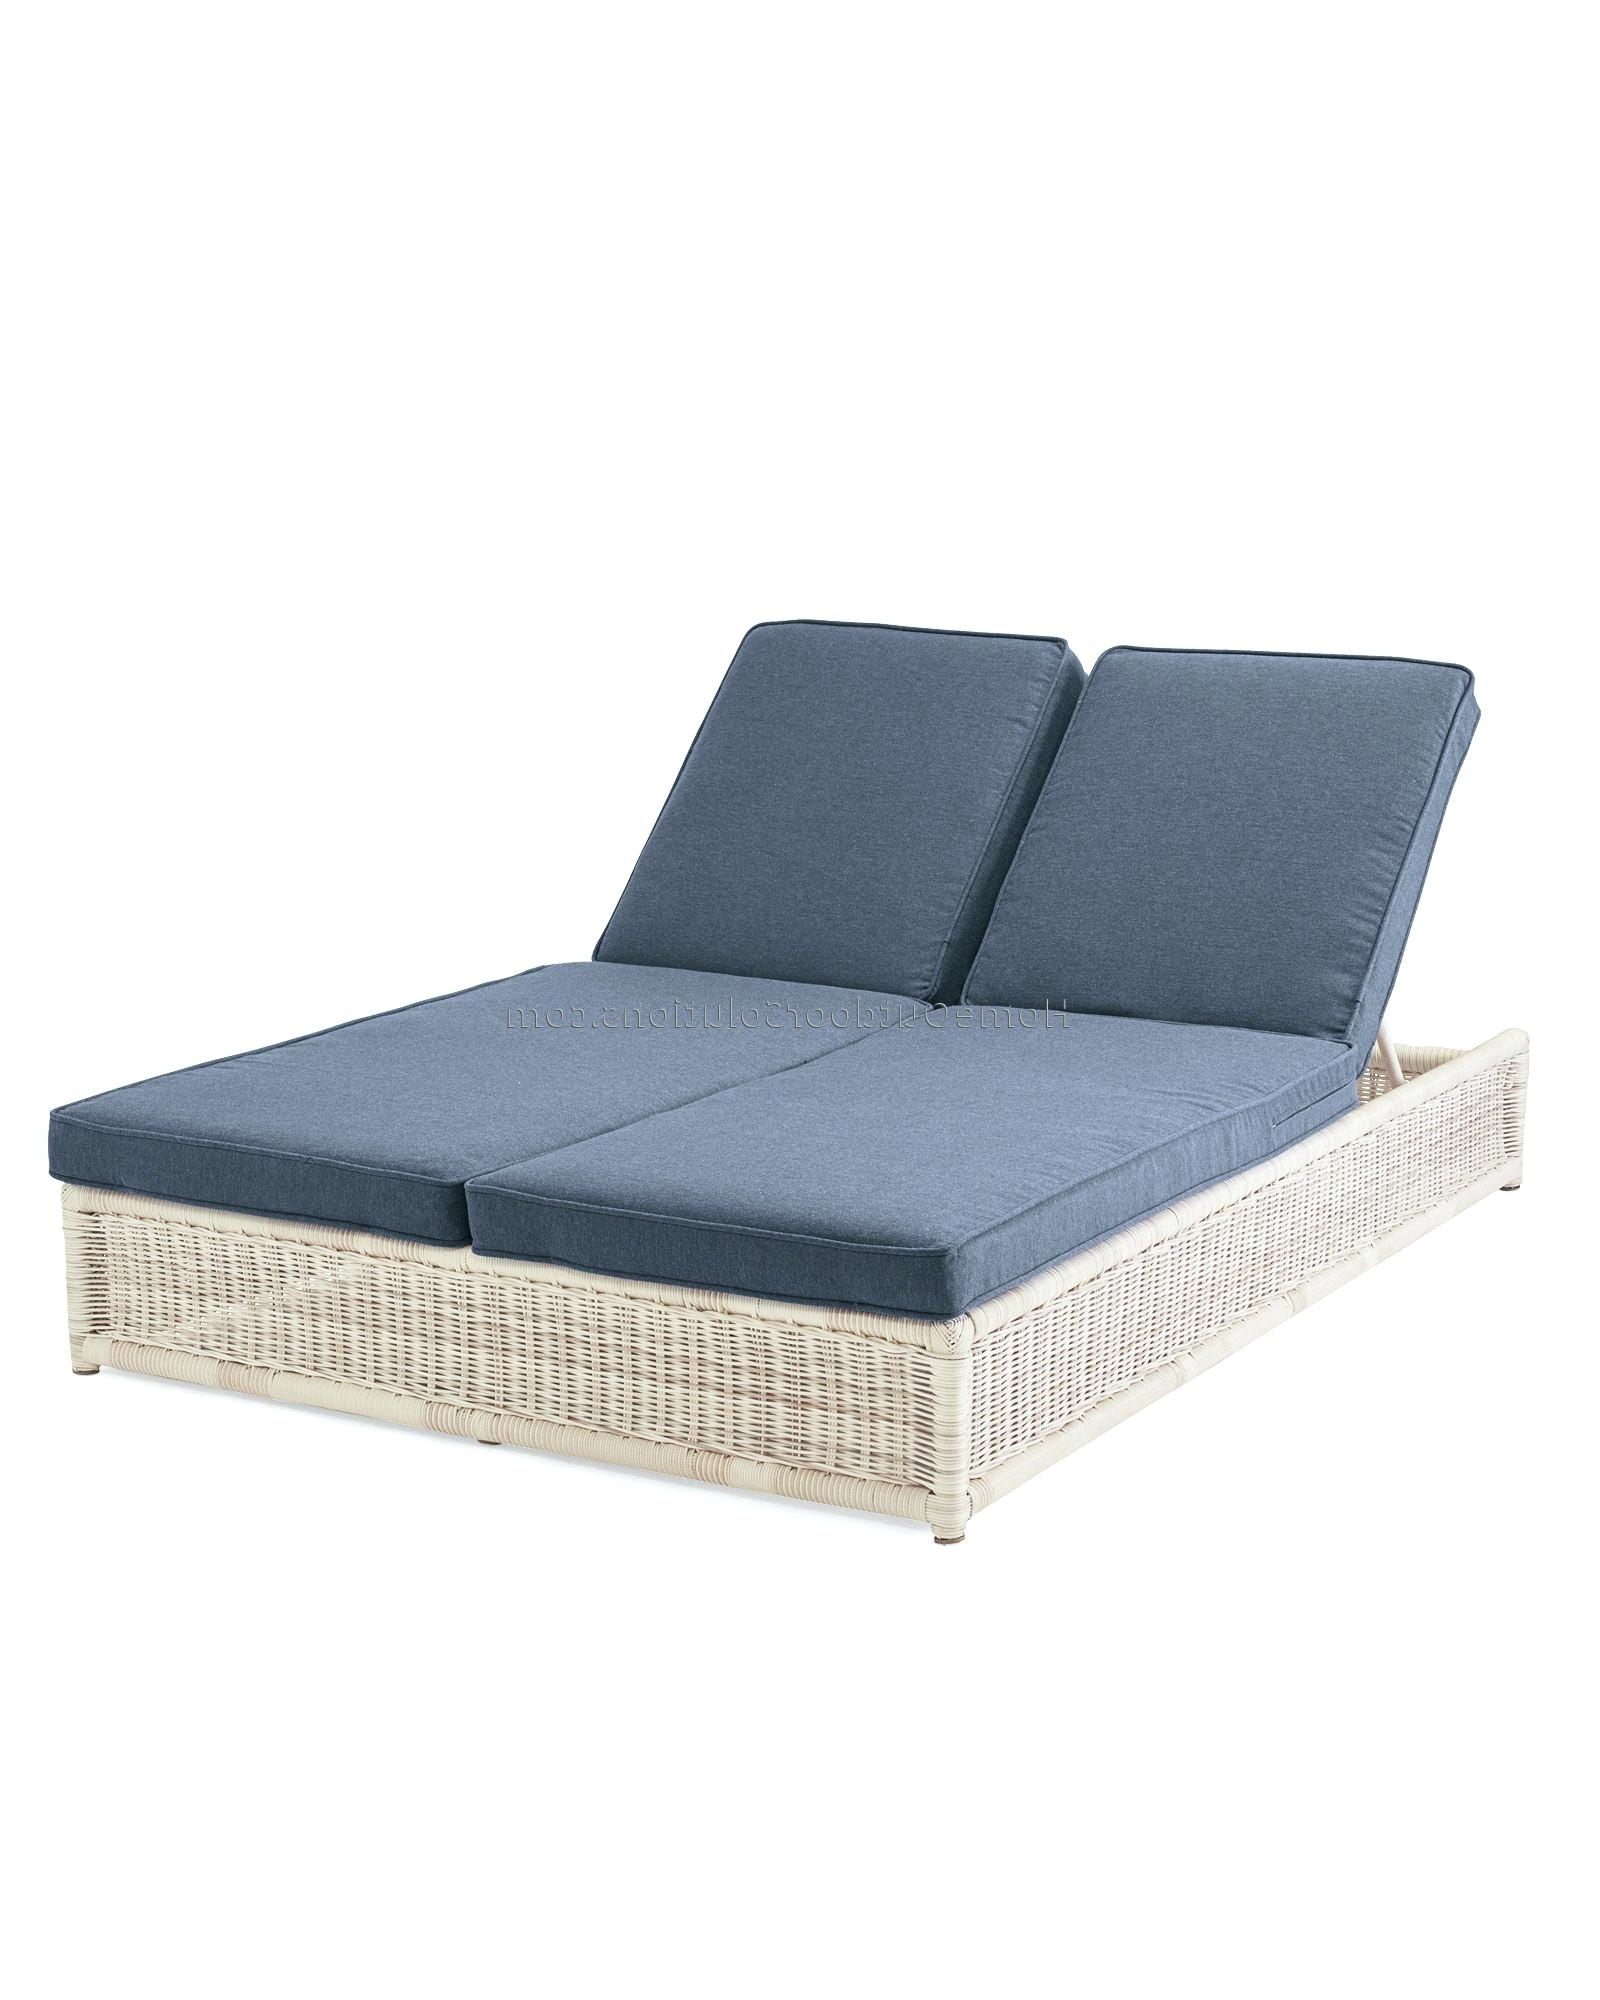 Orbit Chaise Lounges Pertaining To Preferred Orbit Chaise Lounge Replacement Cushions – Mariaalcocer (View 10 of 15)